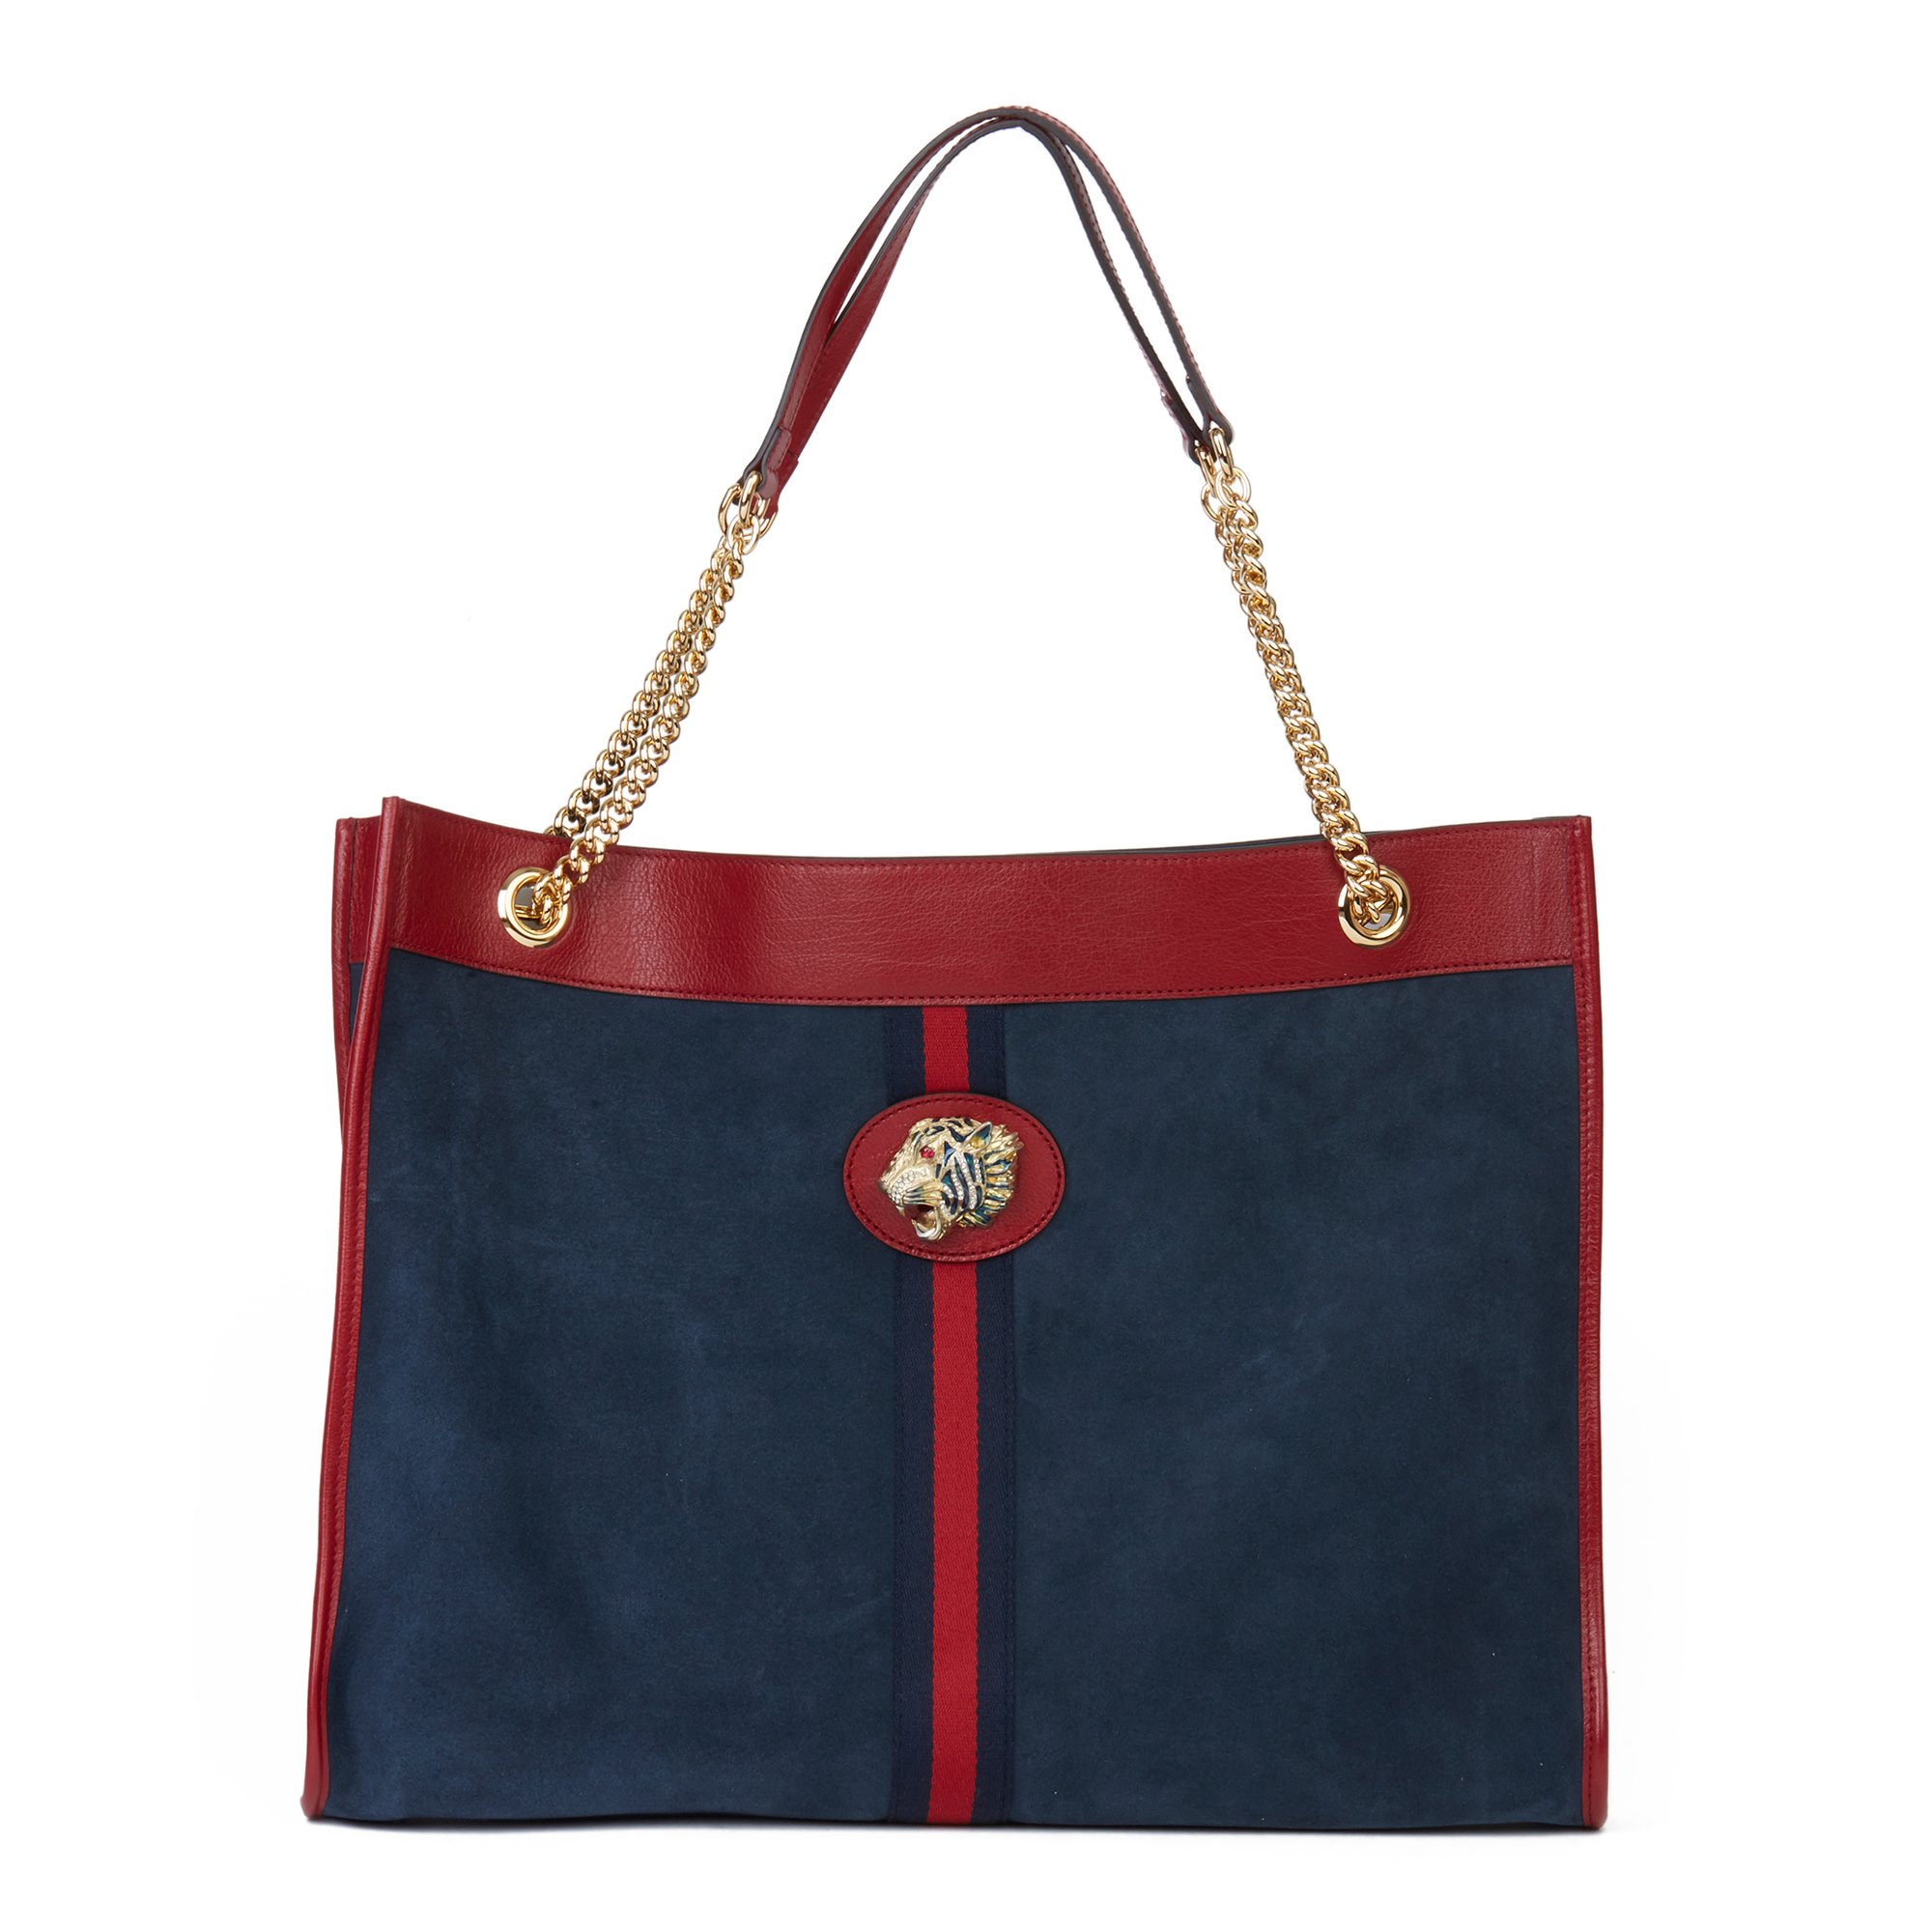 Gucci Red Aged Calfskin Leather & Blue Suede Web Large Rajah Tote